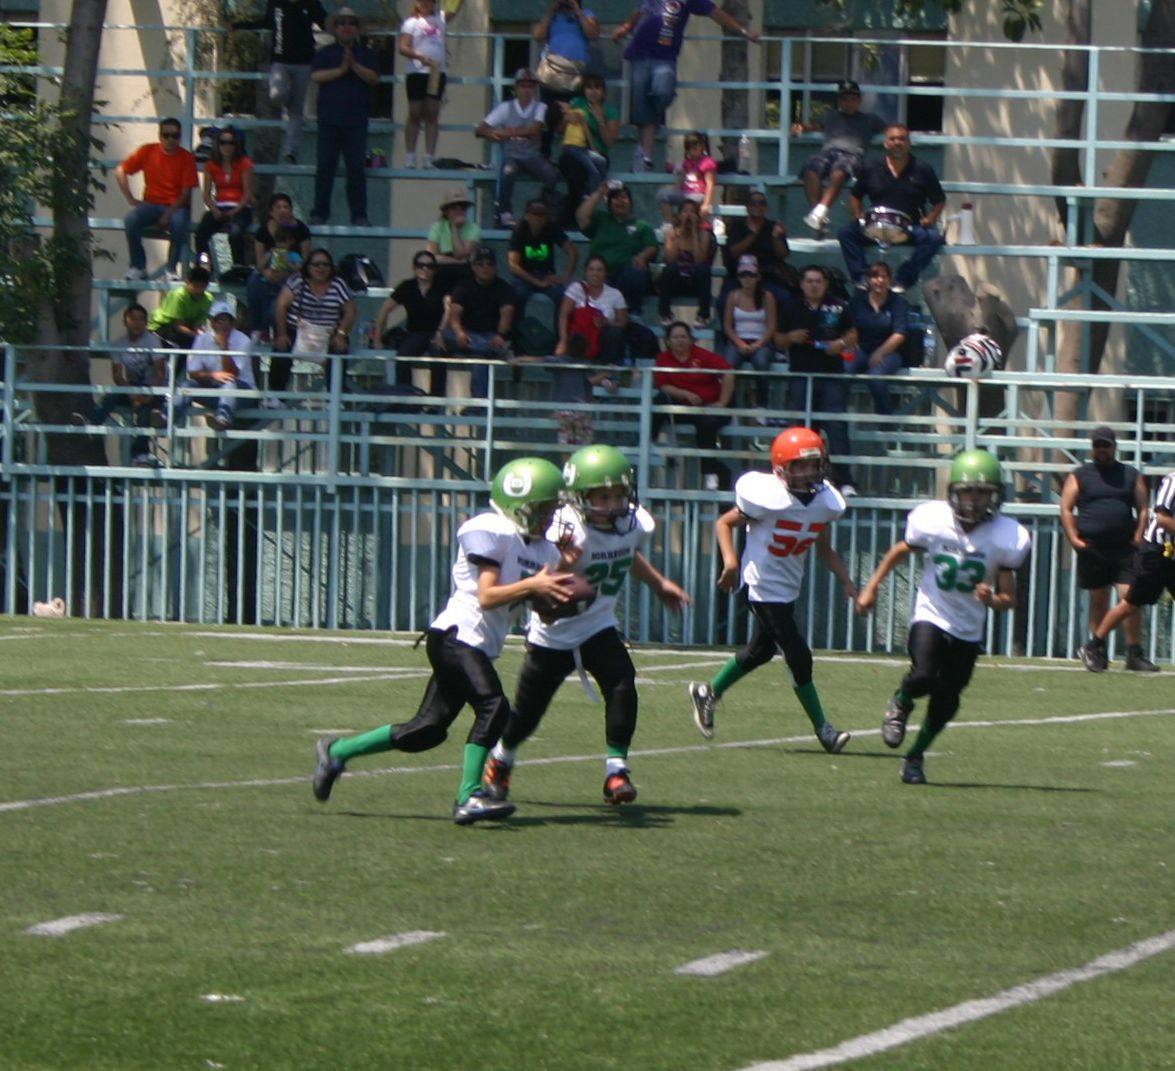 Borregos Salvajes vs. Titanes - Pre-Infantil (4-May-13) RR